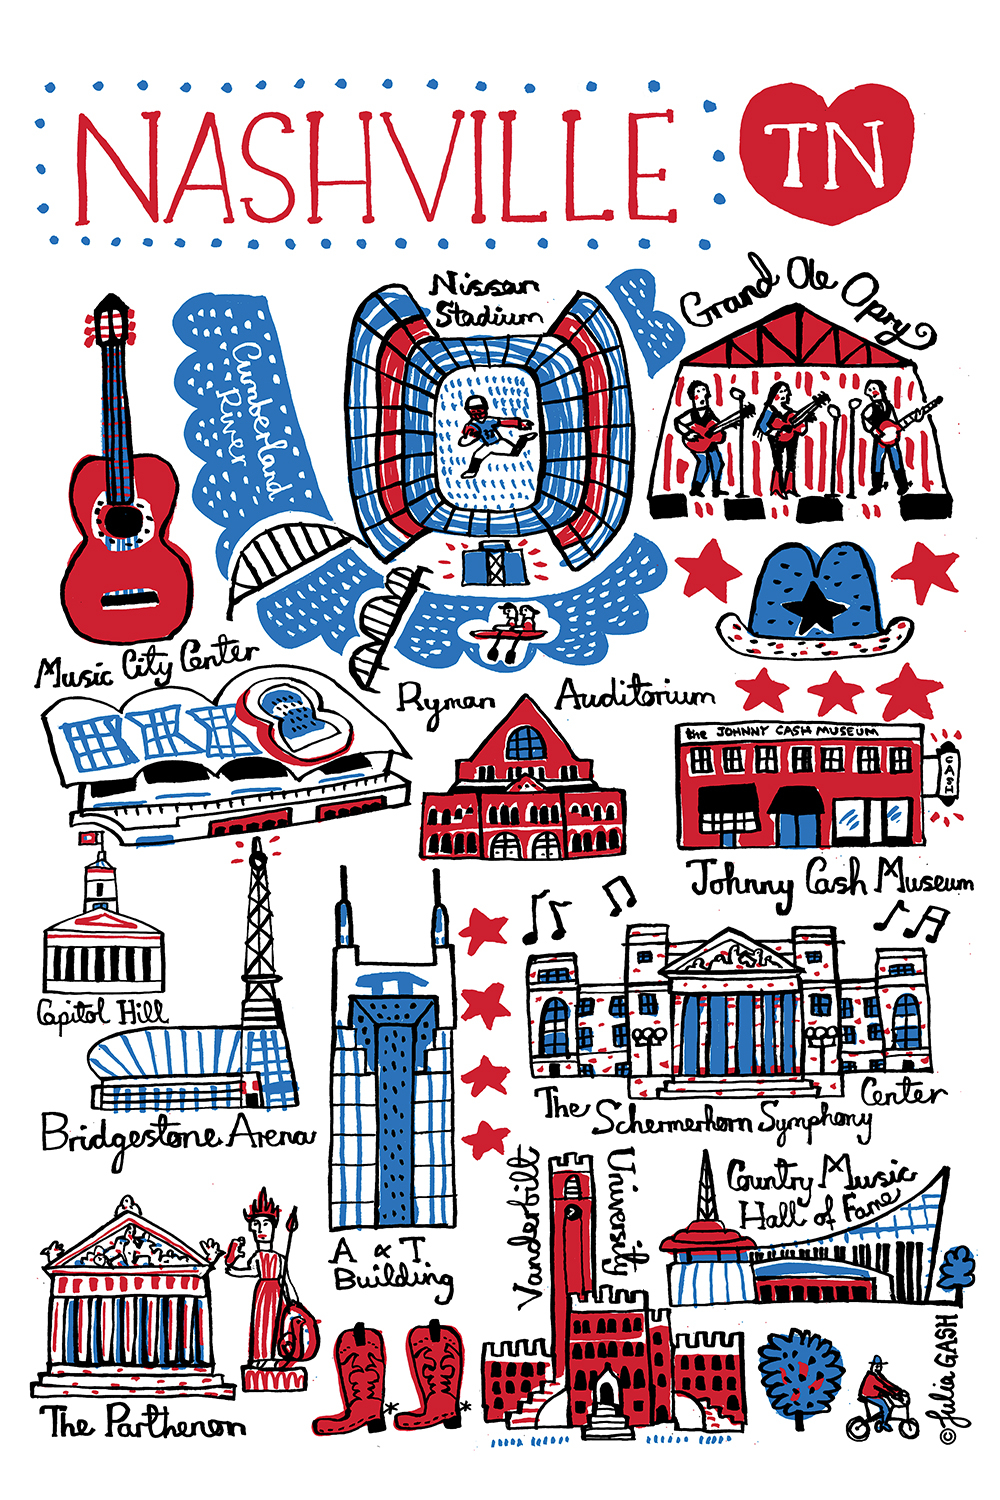 Illustration of symbols and landmarks from Nashville in red and blue on a white background